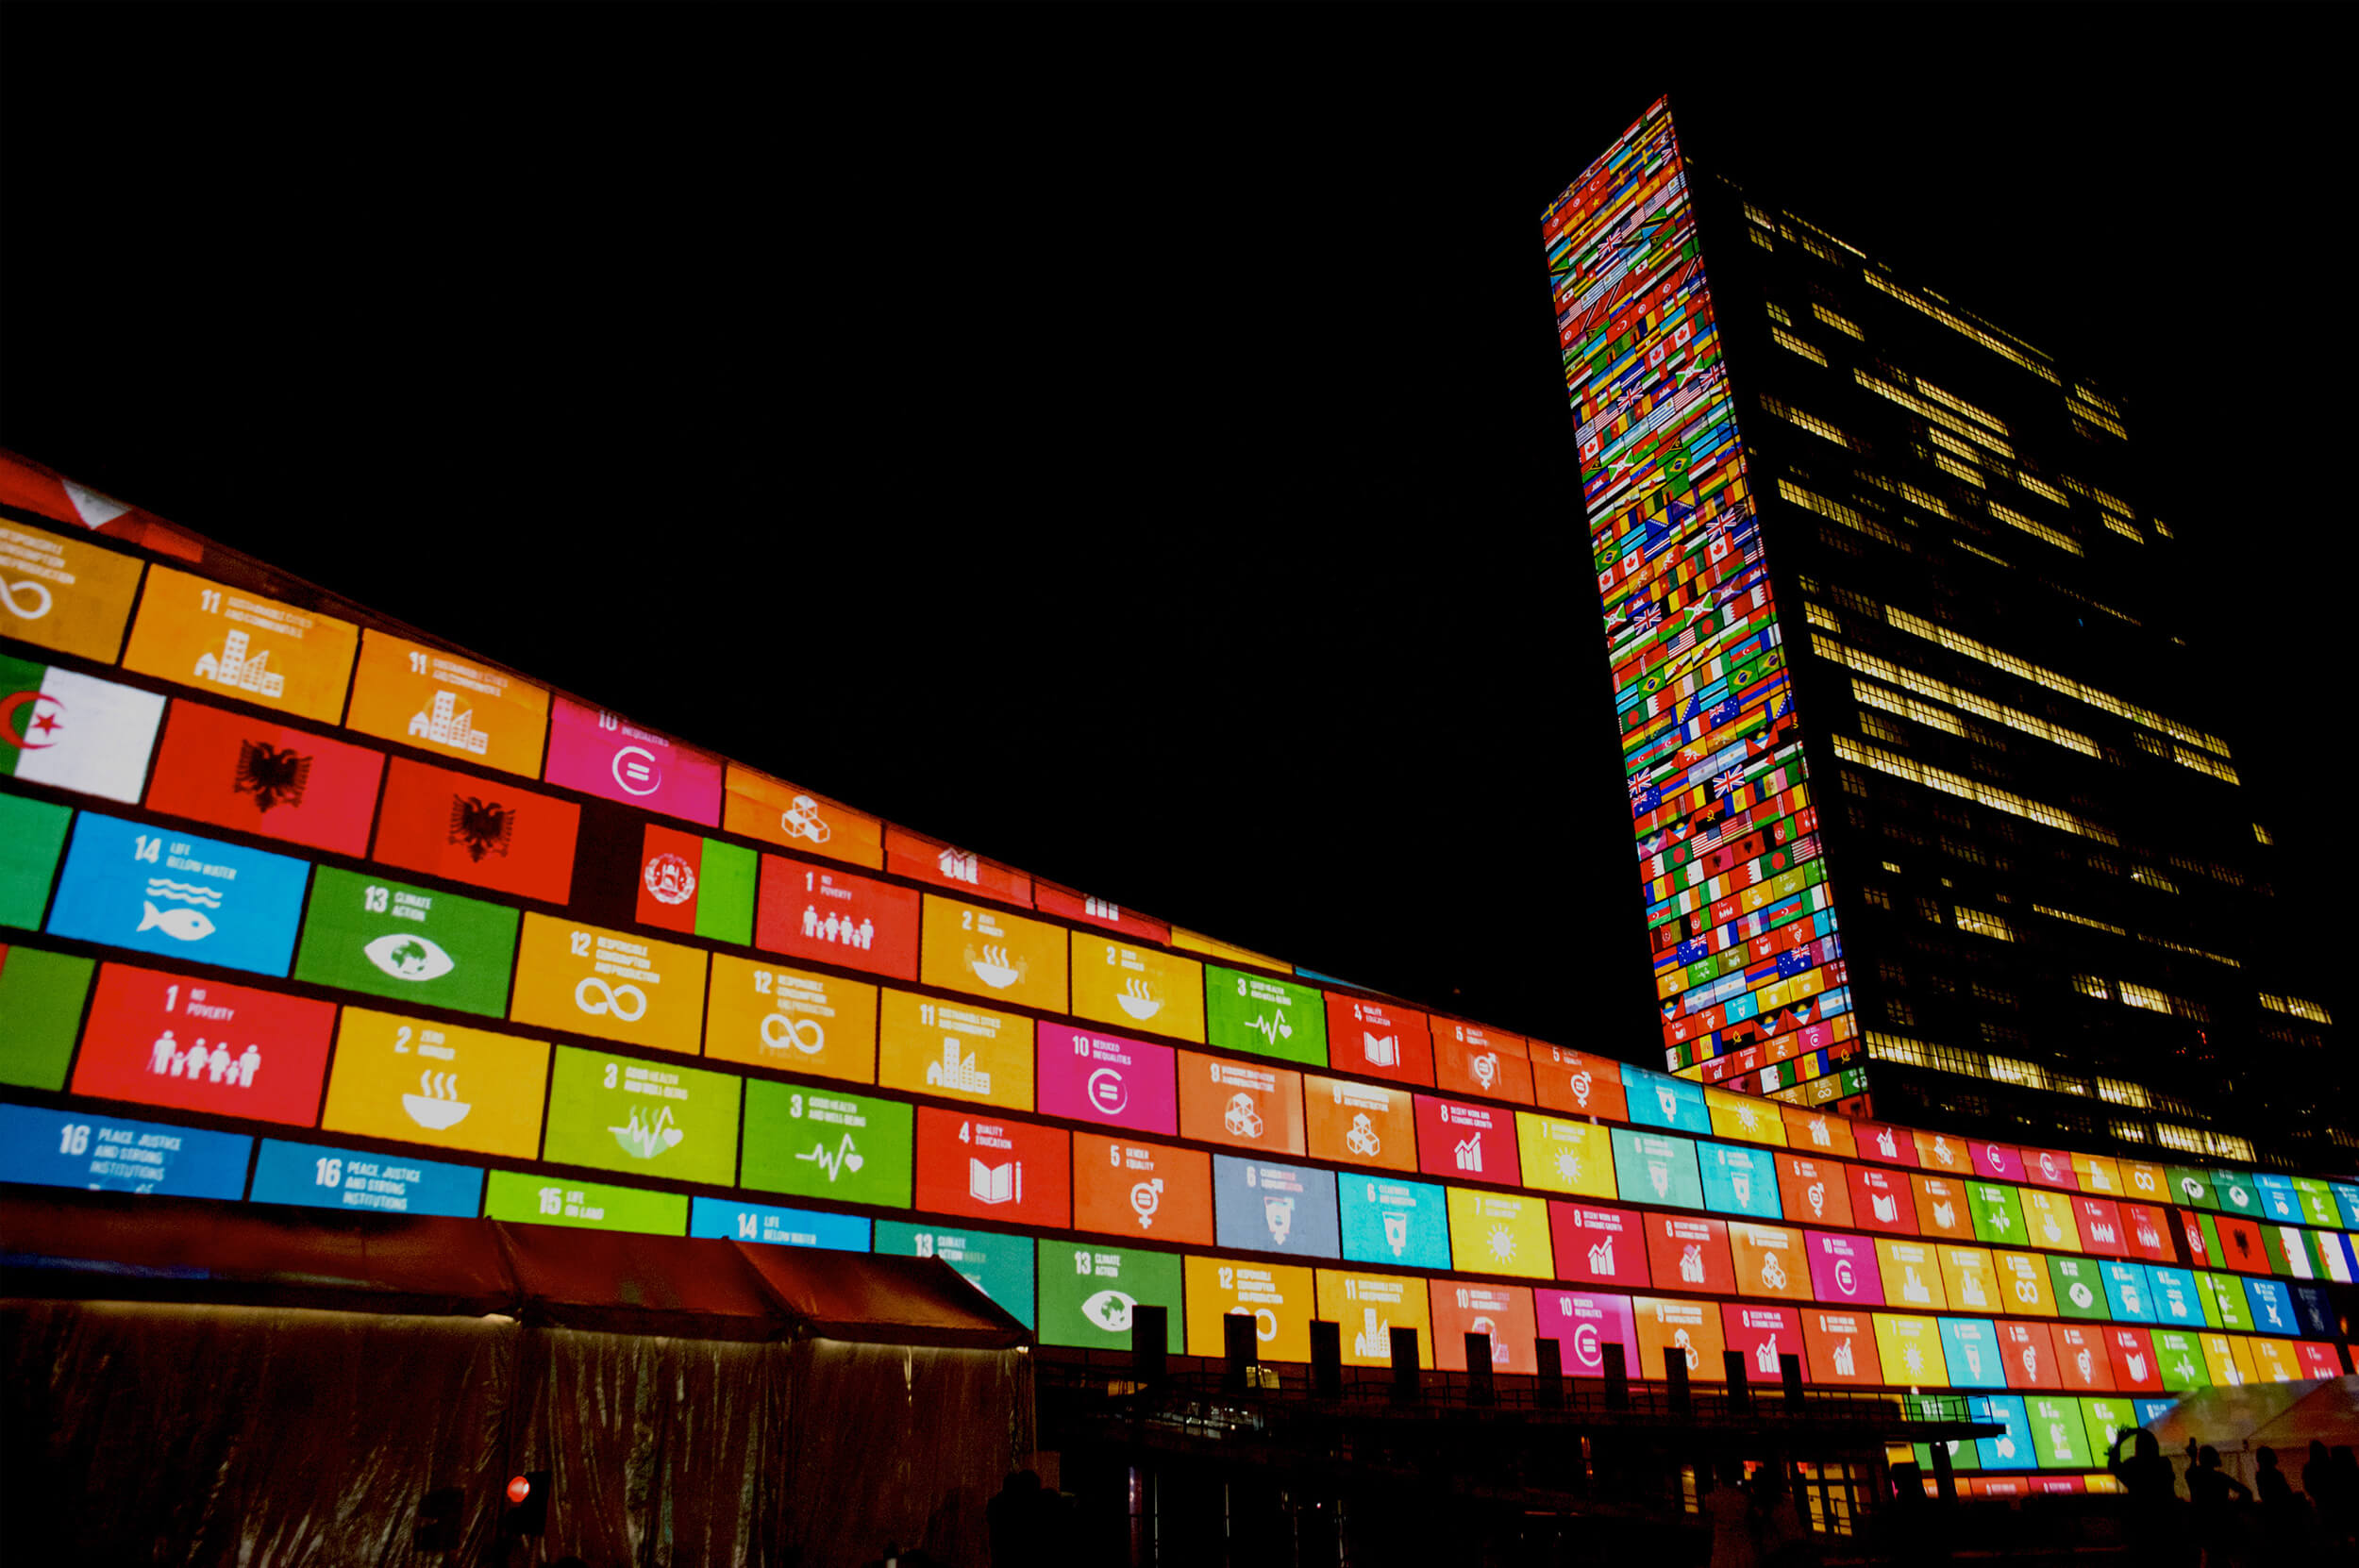 Creating a safer environment for sustainable development